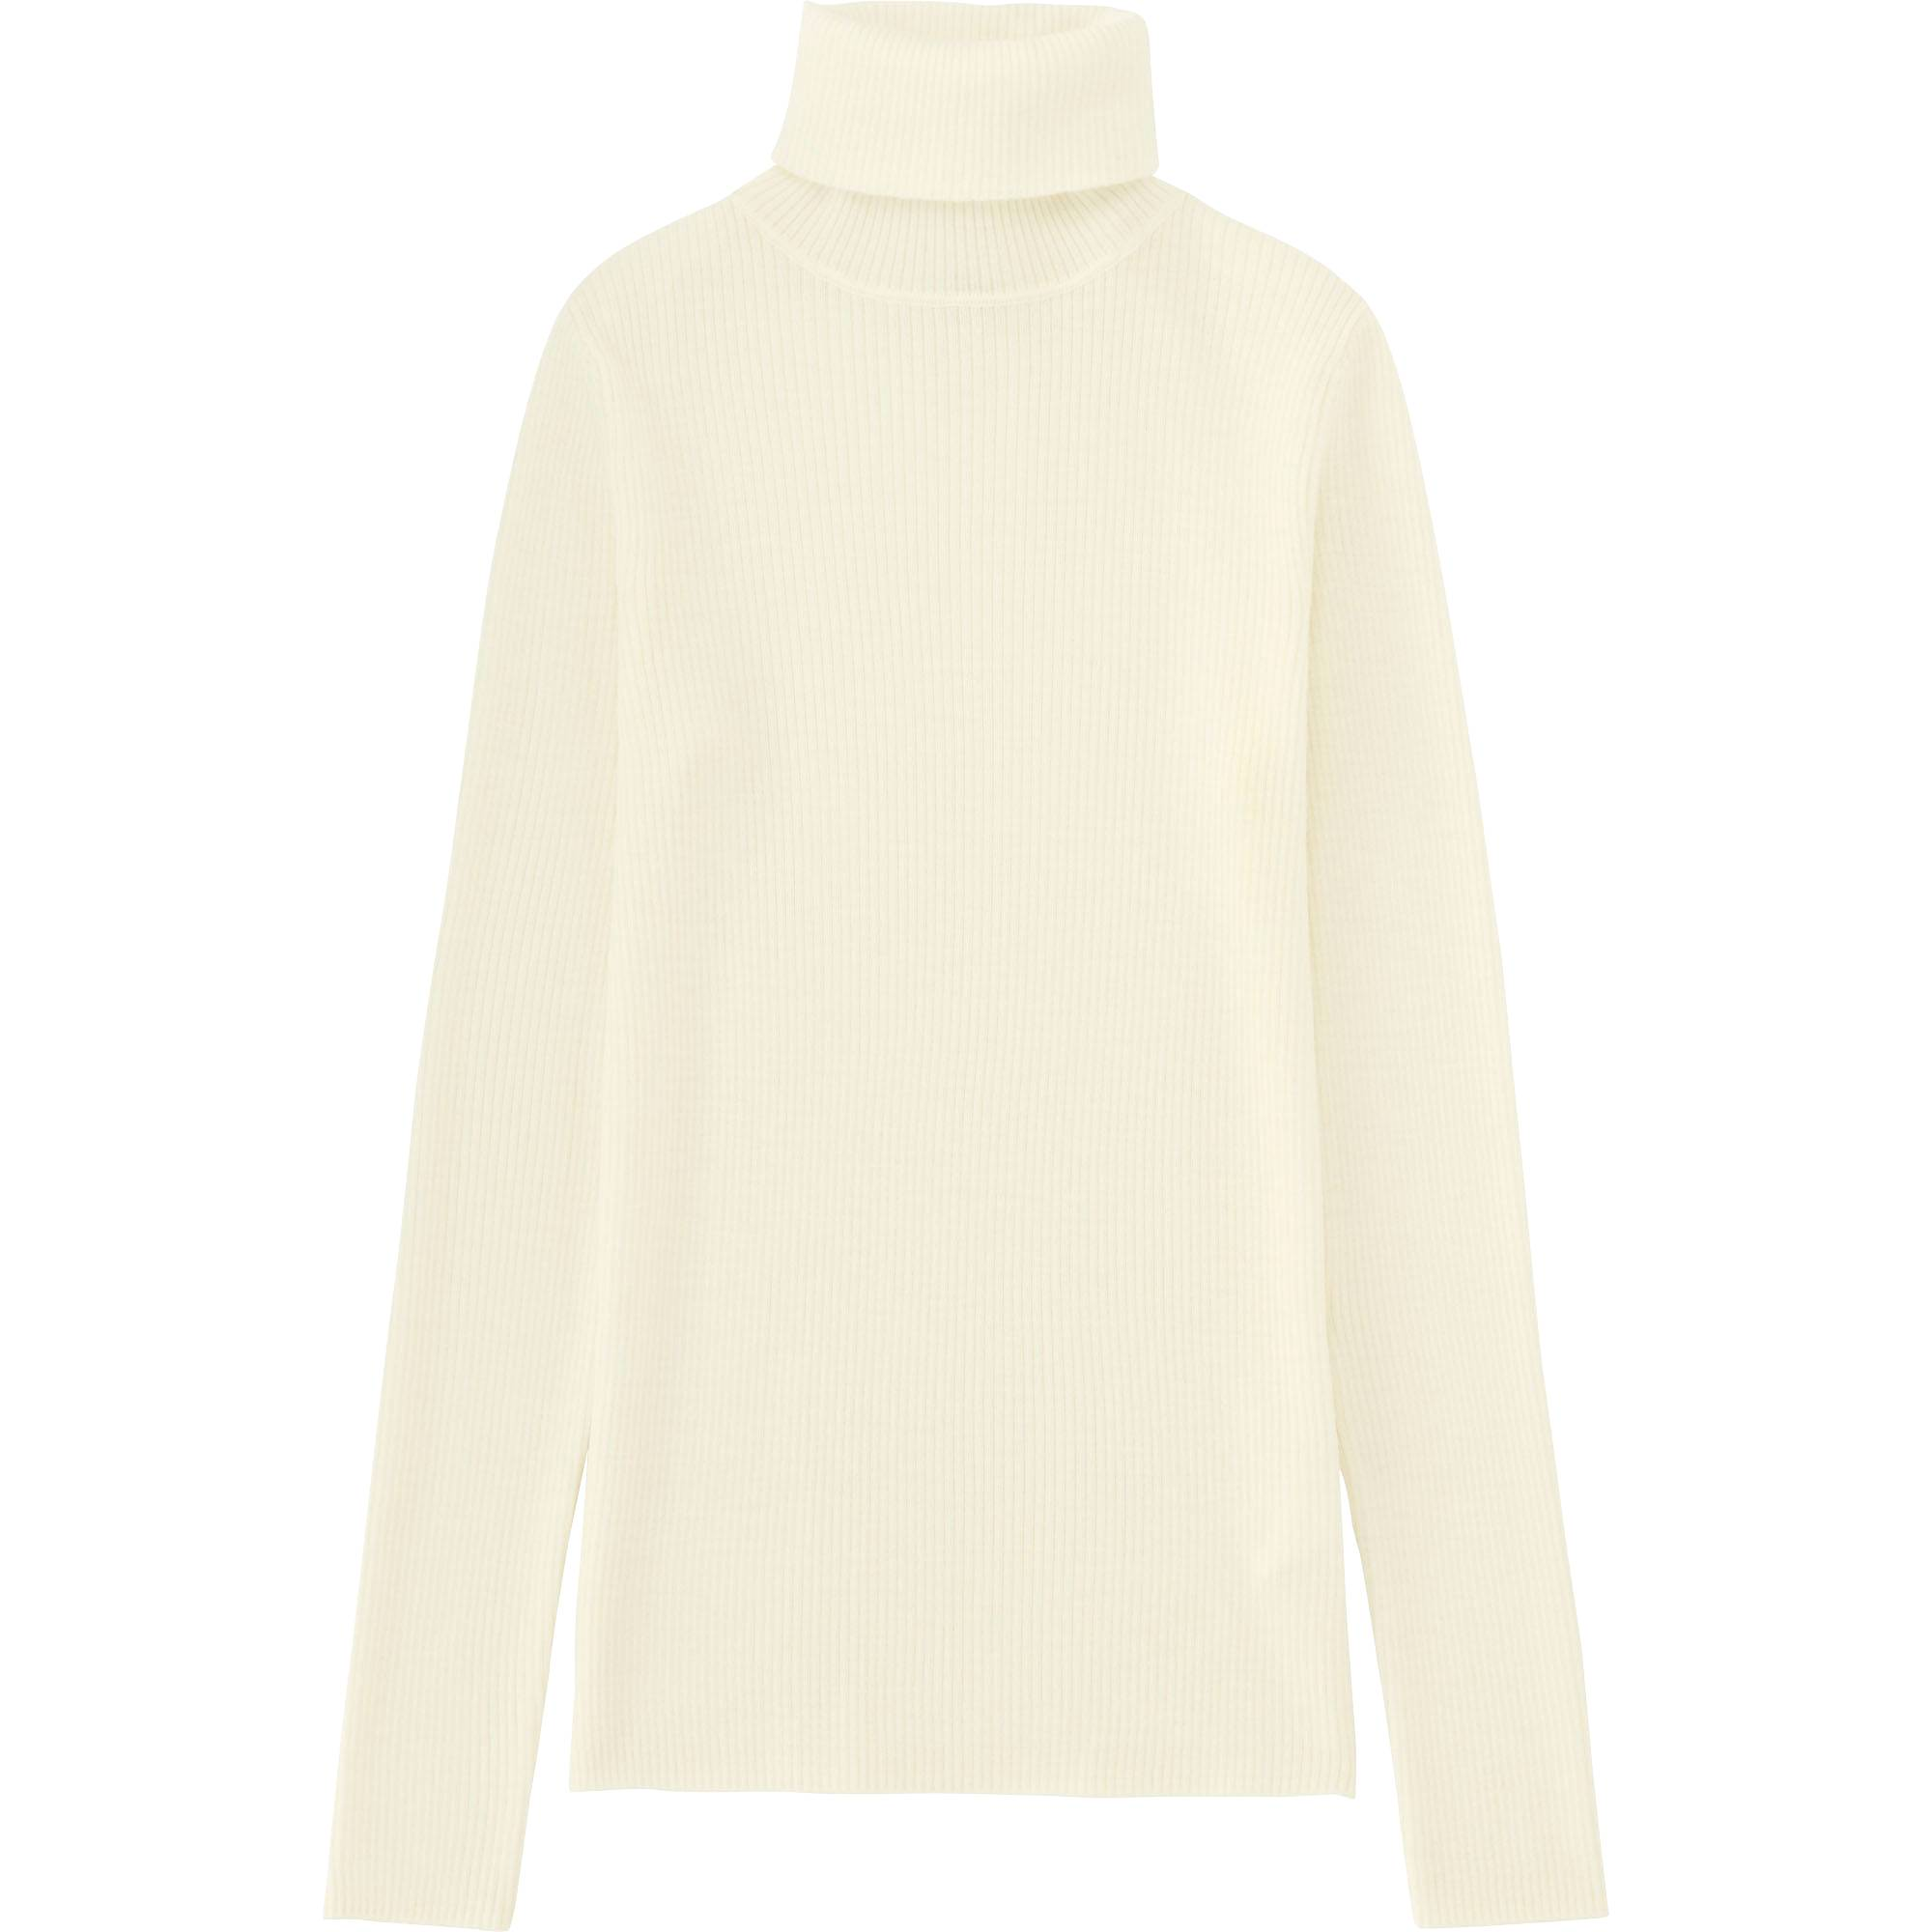 WOMEN EXTRA FINE MERINO RIBBED TURTLE NECK SWEATER | UNIQLO US